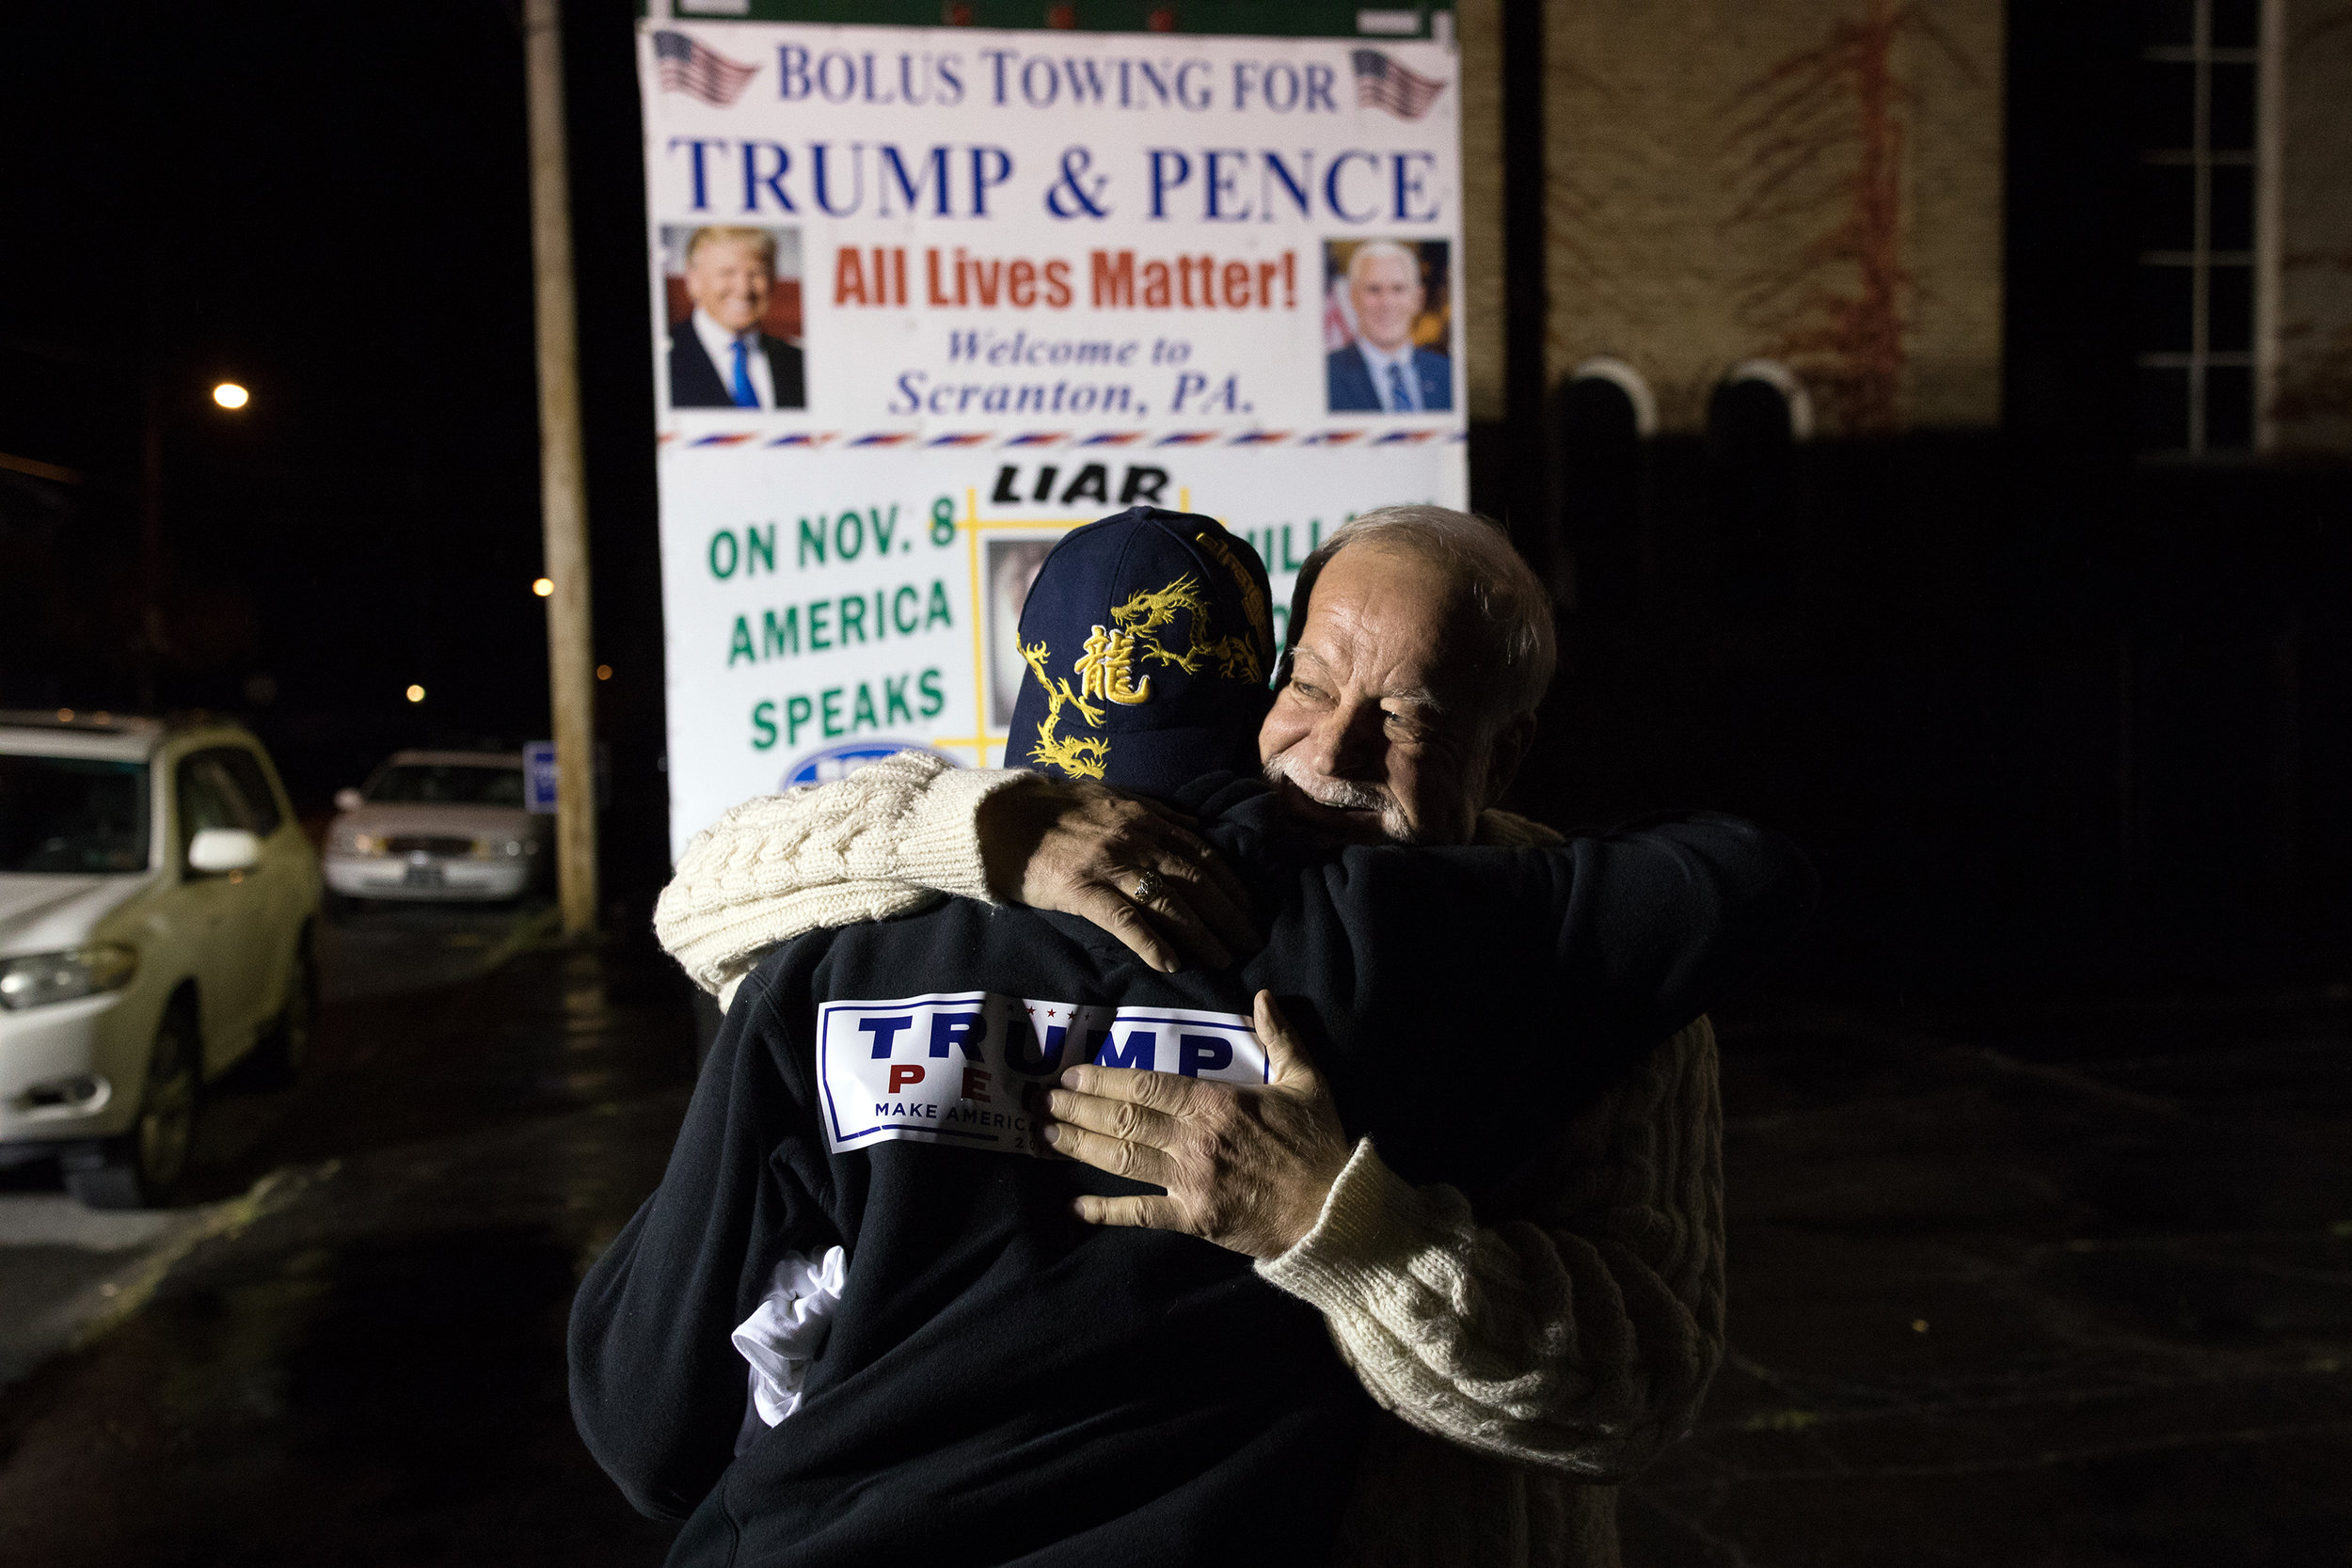 Donald Trump supporter Bob Bolus greeting a fellow supporter on election night outside a Trump volunteer center in Scranton, Pennsylvania.